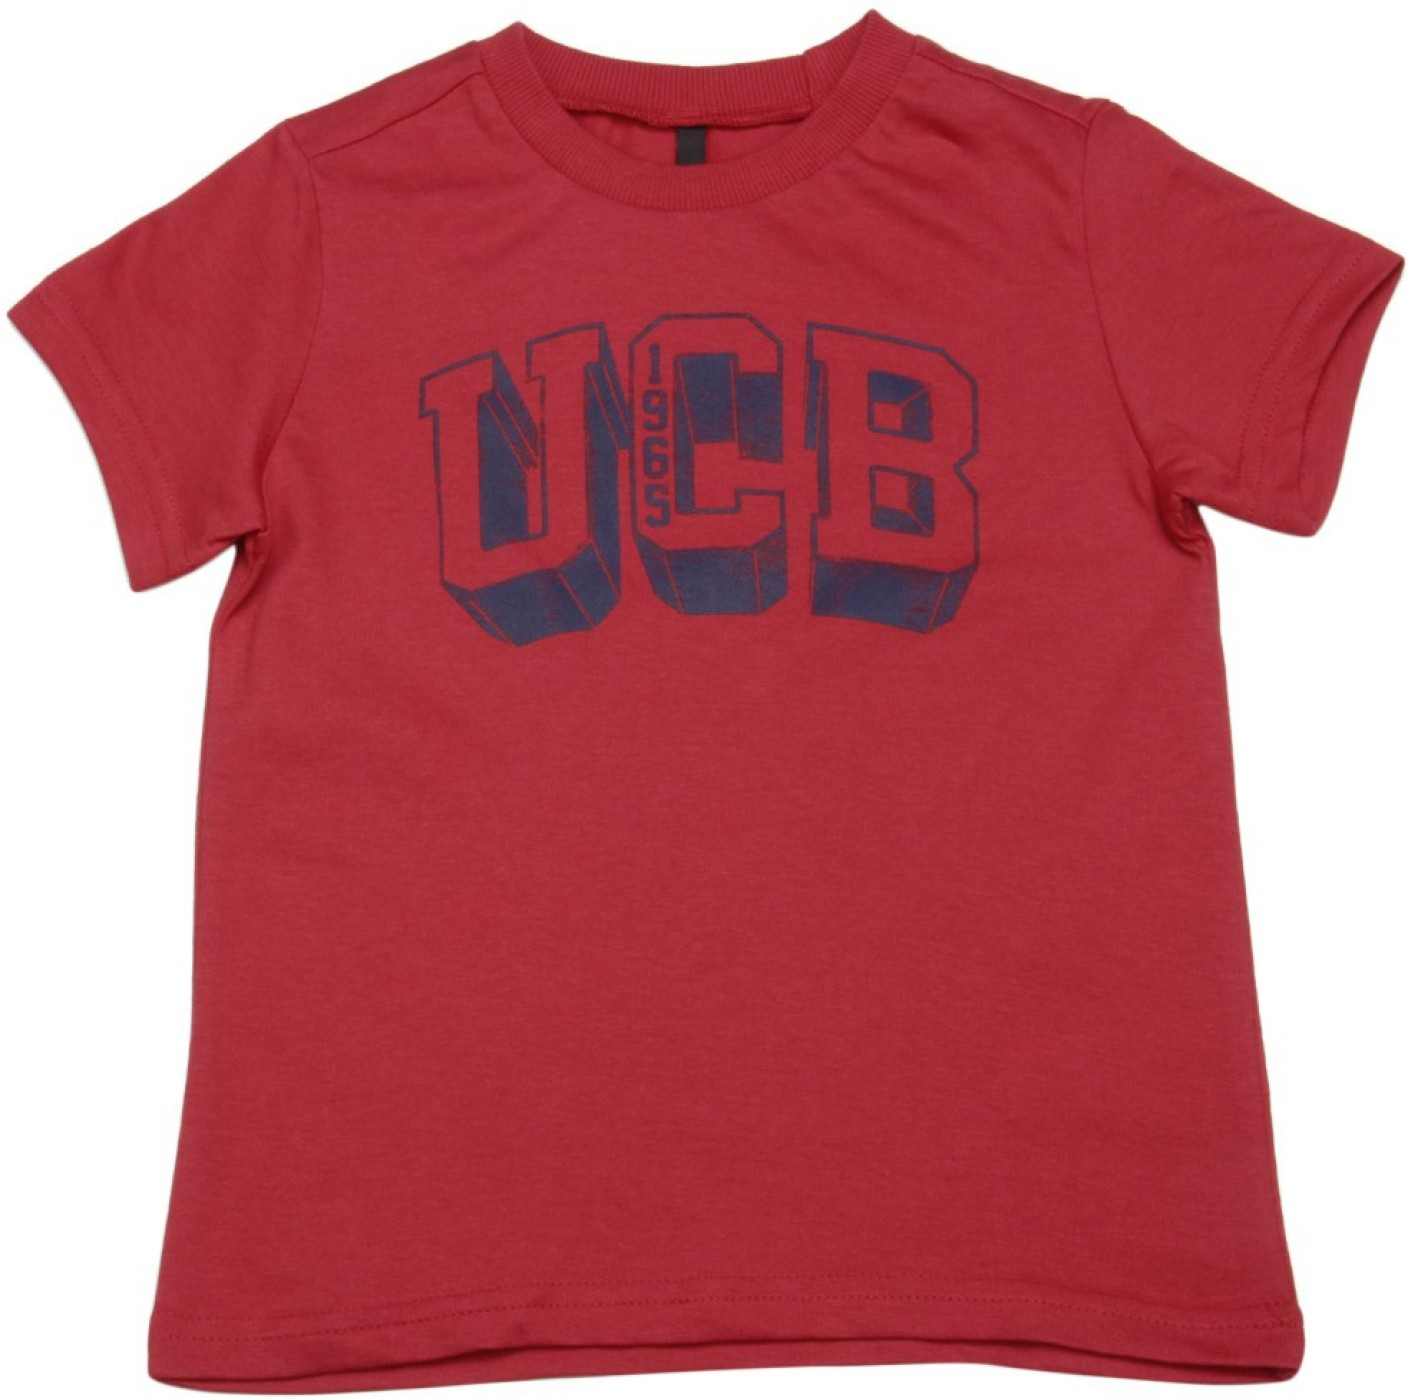 dfc542c50 United Colors Of Benetton T Shirts Pack Of 3 – EDGE Engineering and ...